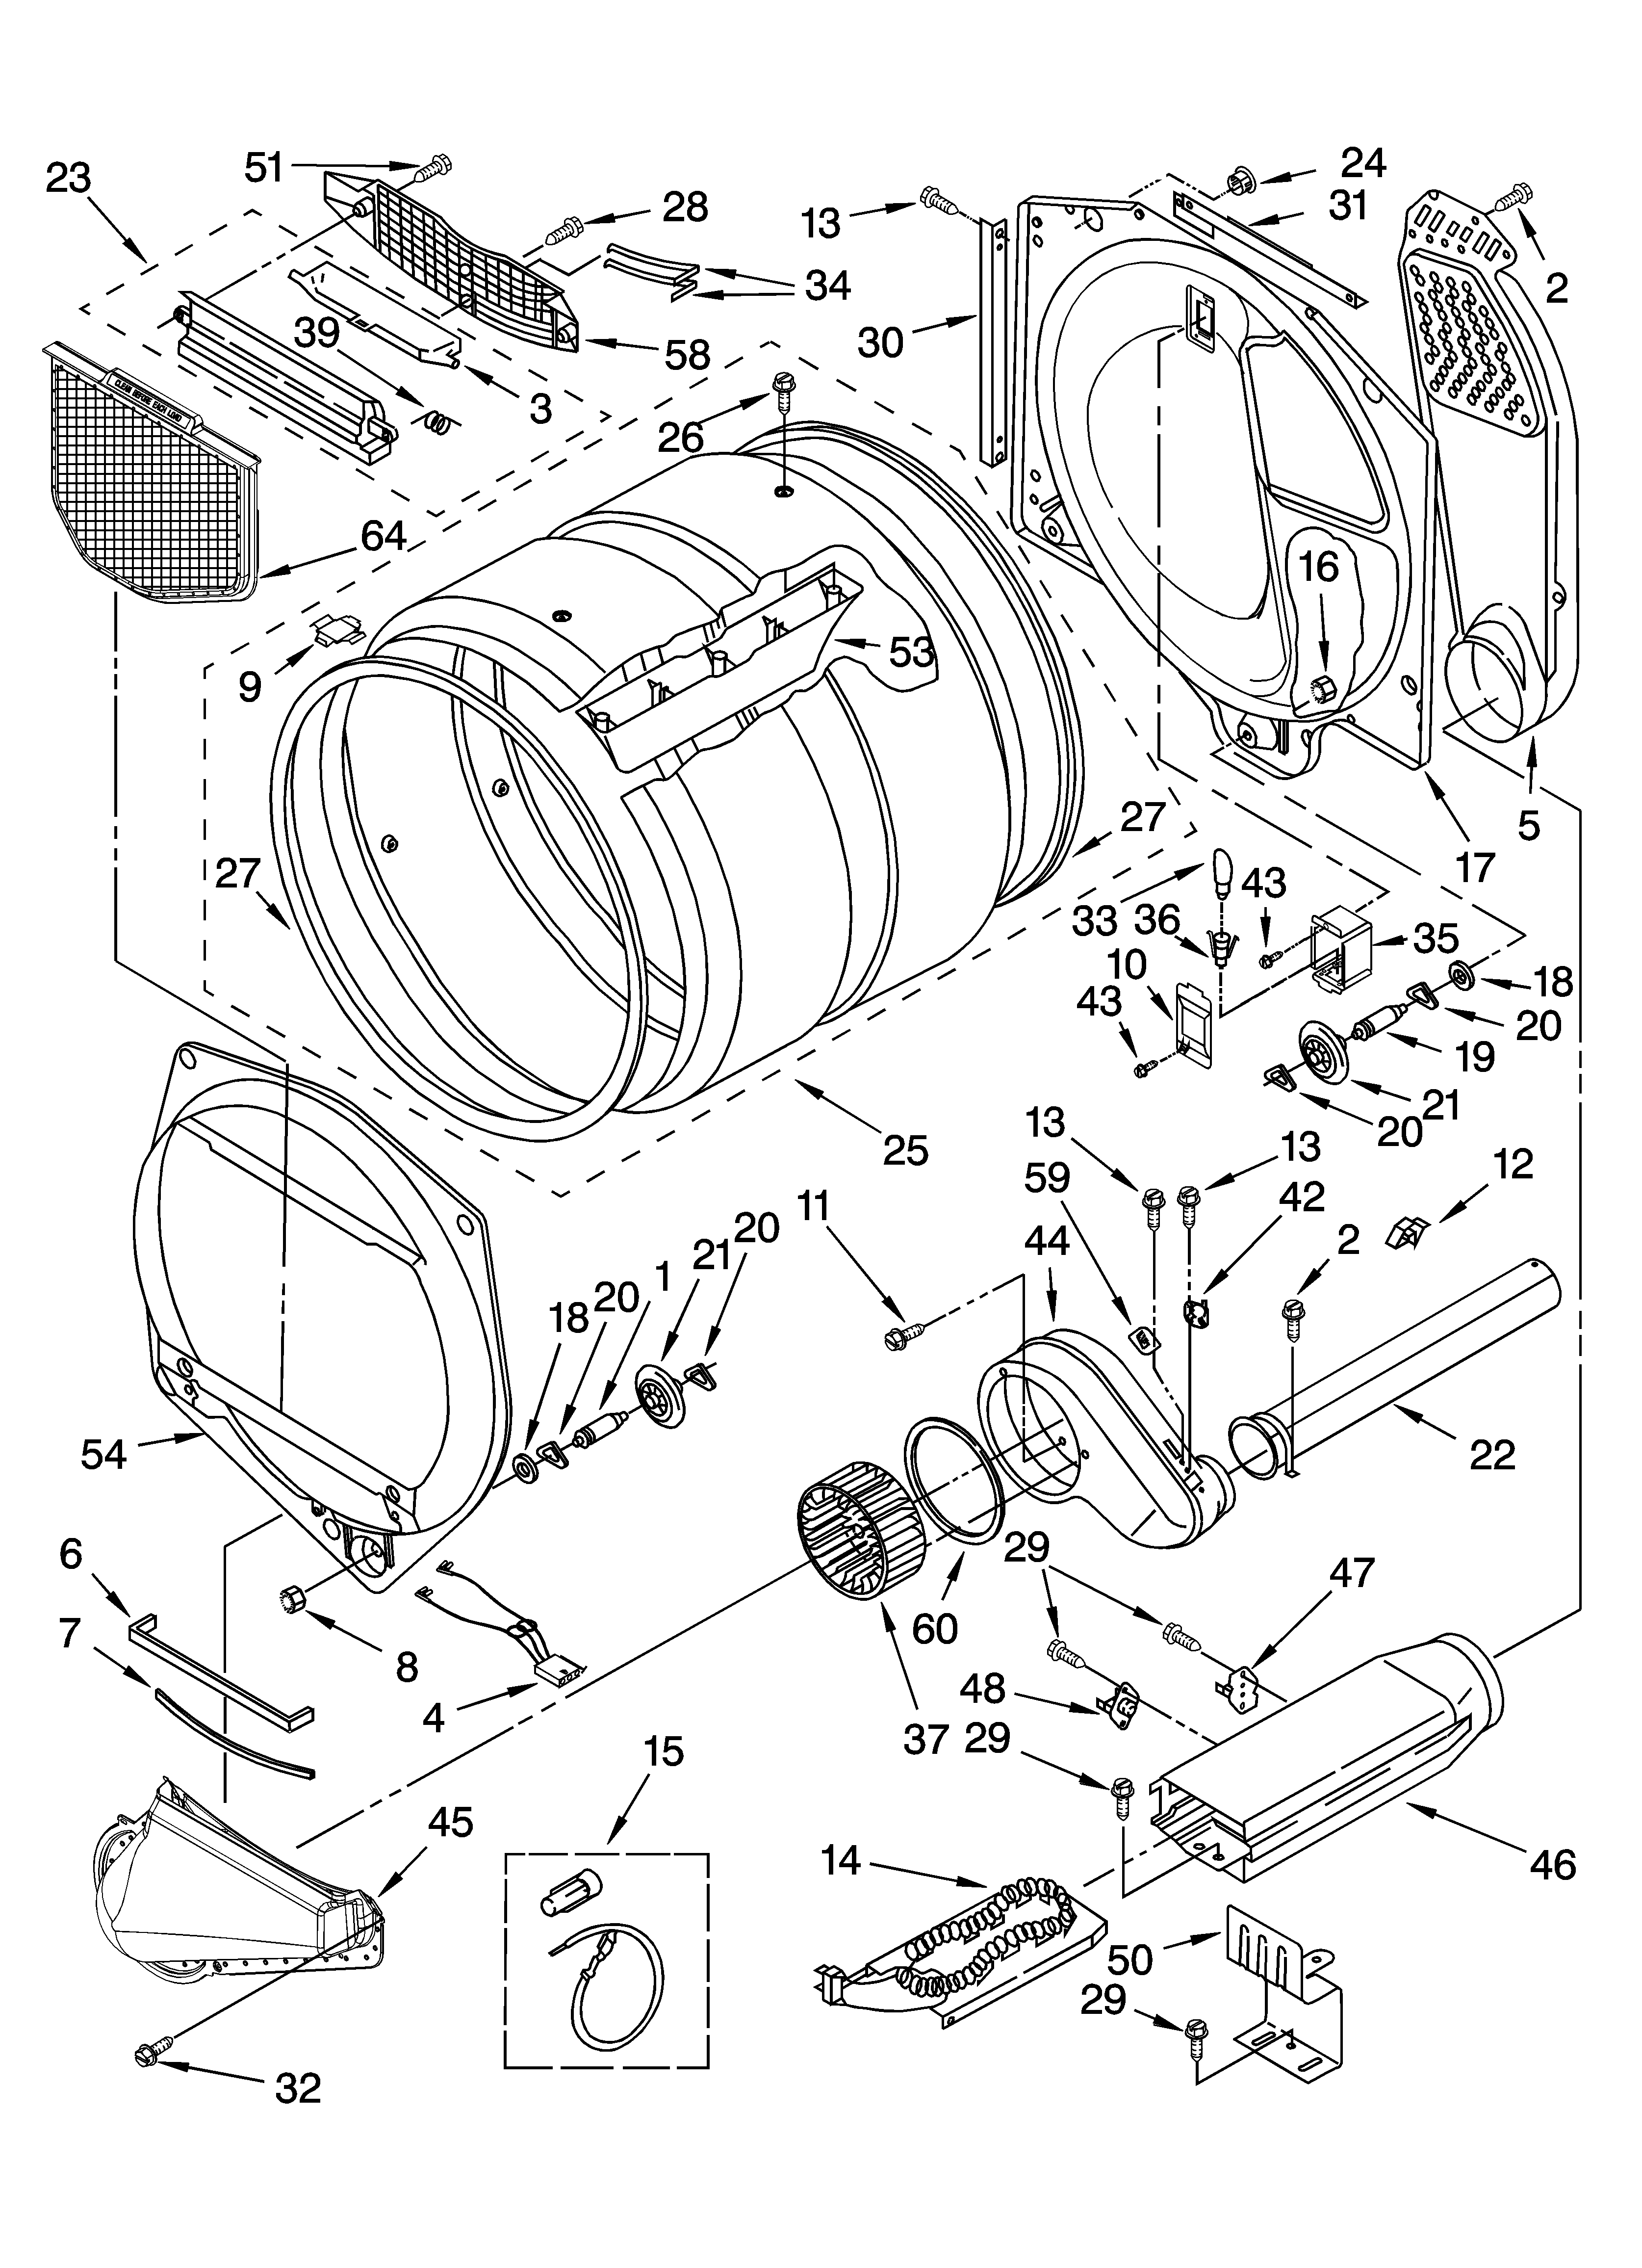 hight resolution of wiring diagram for whirlpool cabrio dryer in addition kenmore machine parts diagram besides whirlpool cabrio dryer